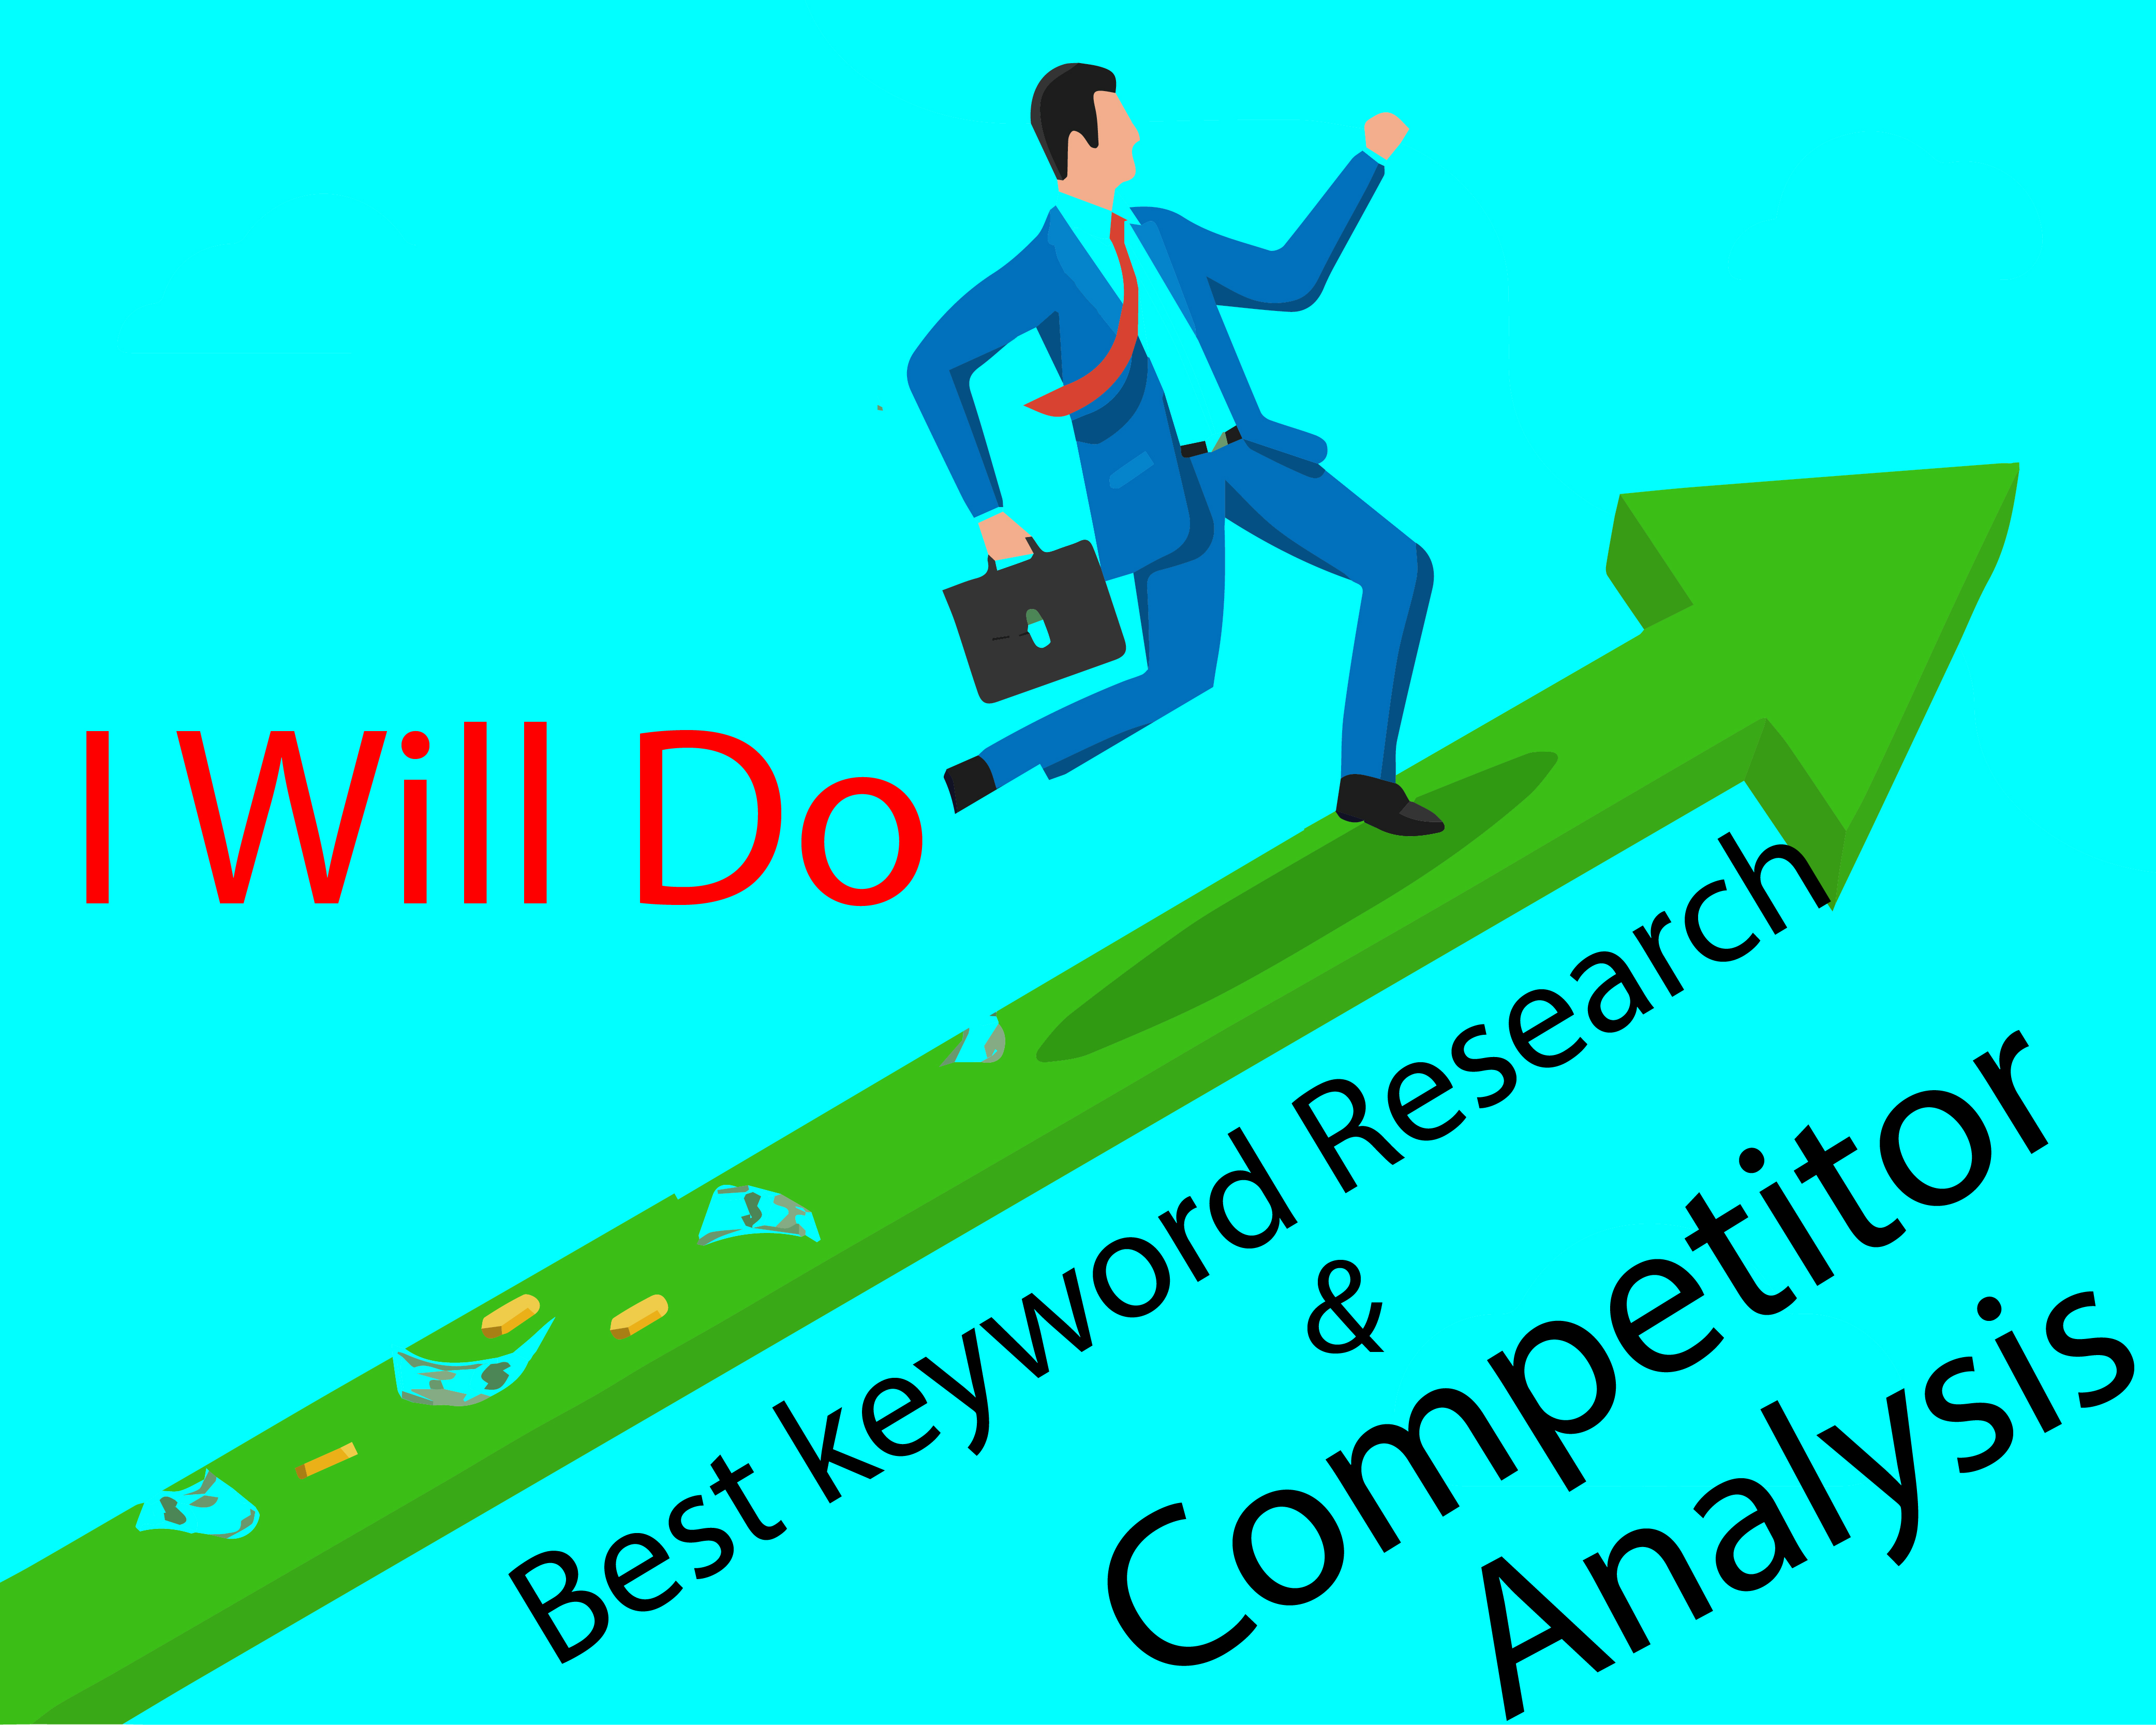 I Will do Best Keyword research and competitor analysis for your site